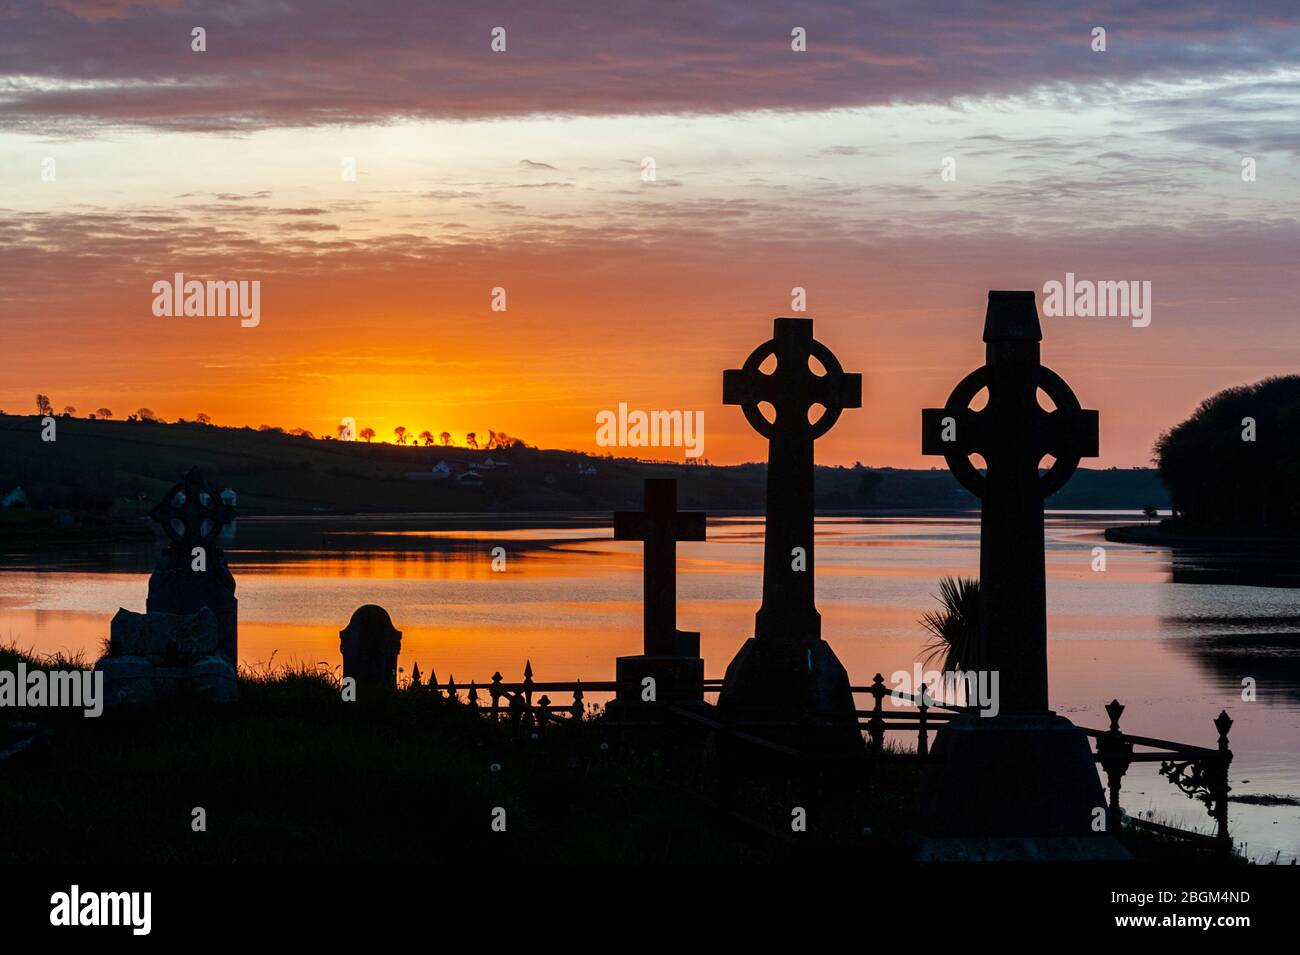 timoleague-west-cork-ireland-22nd-apr-2020-the-sun-rises-over-timoleague-abbey-graveyard-on-the-50th-anniversary-of-earth-day-earth-day-is-celebrated-across-the-world-and-is-a-call-to-action-to-help-protect-the-earth-credit-ag-newsalamy-live-news-2BGM4ND.jpg